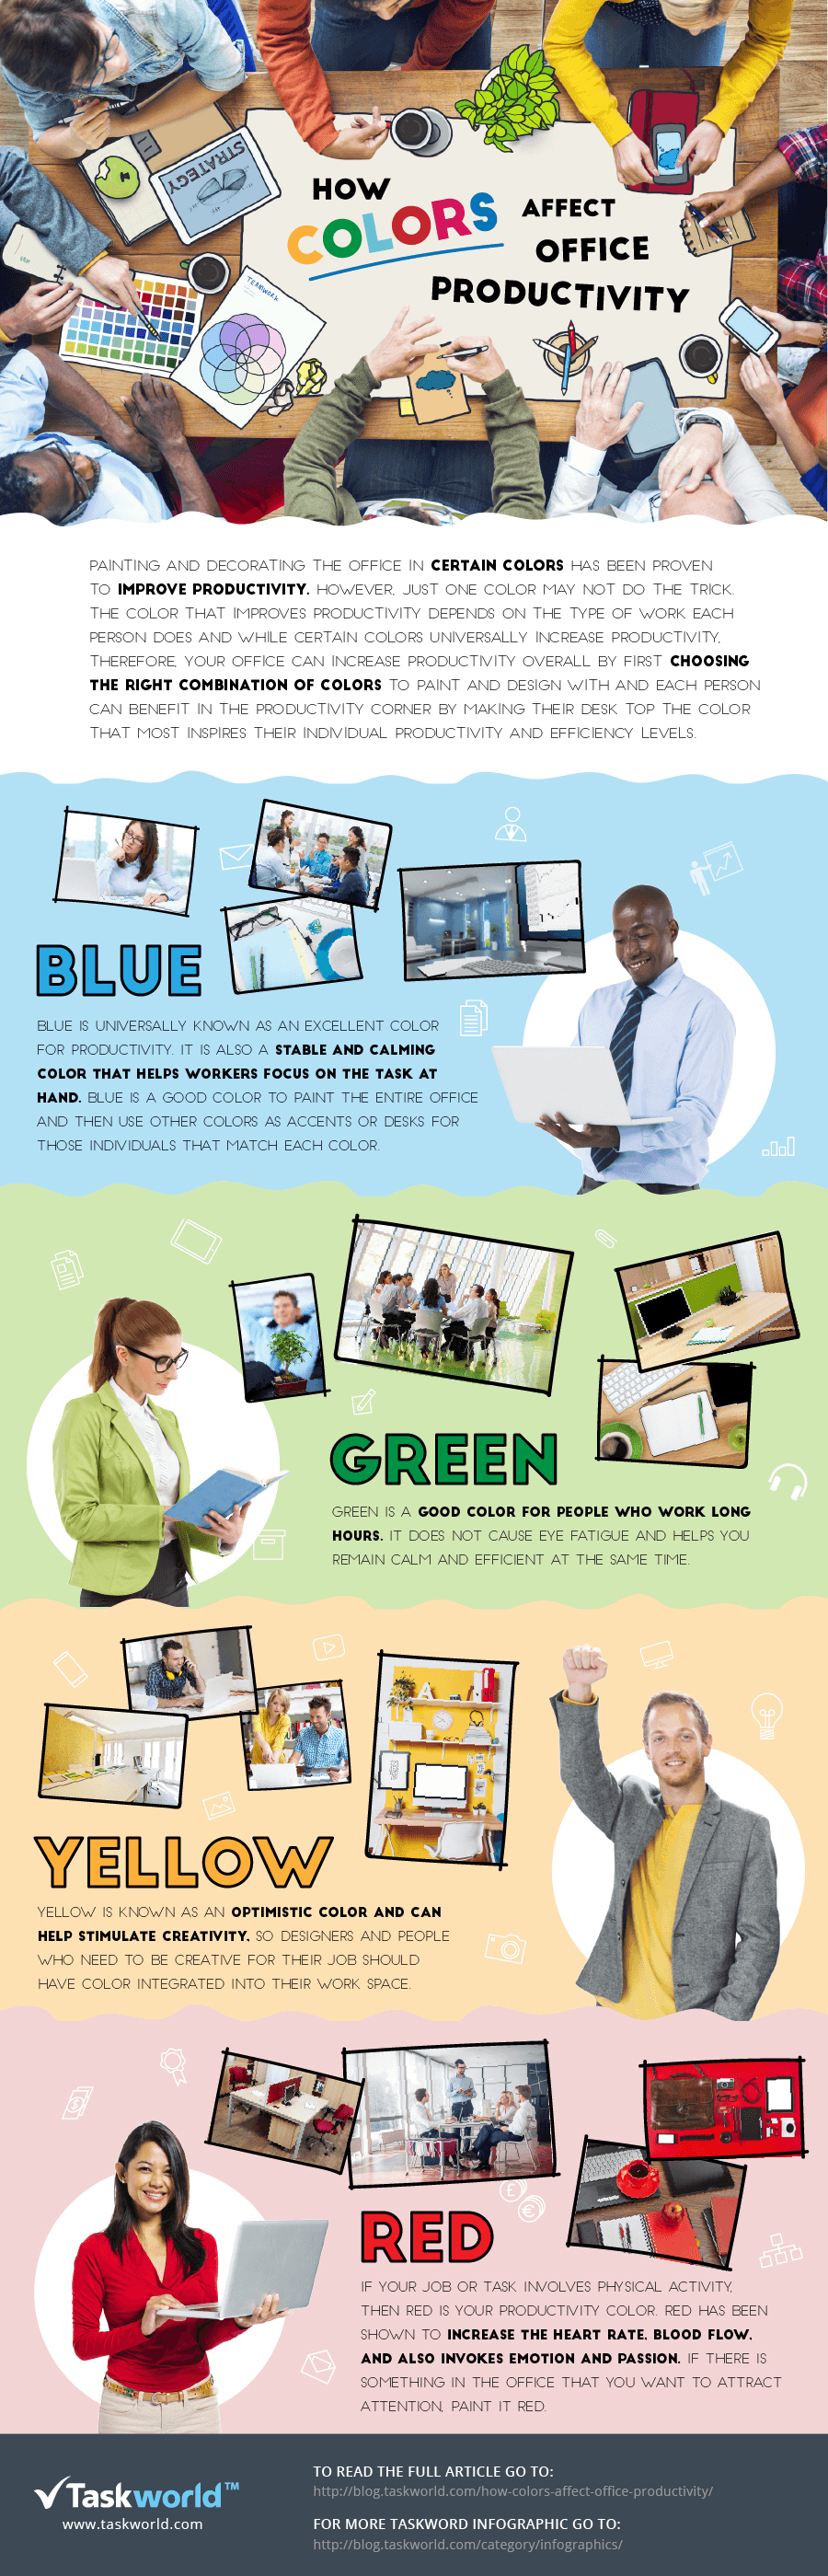 how office color affects productivity the muse